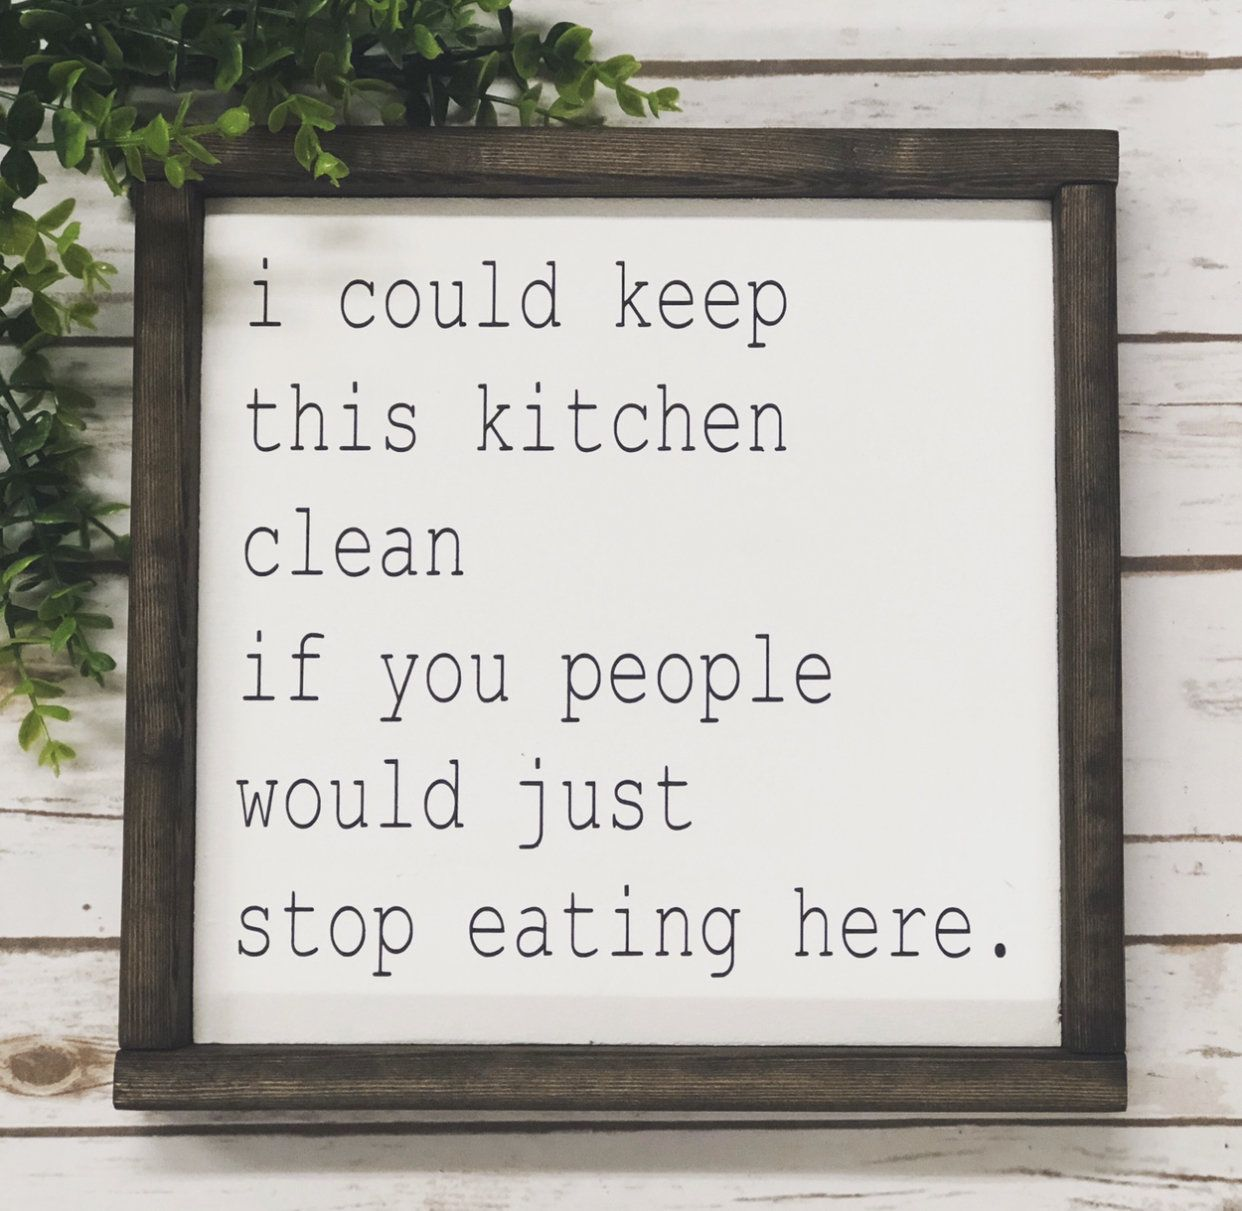 Everyone Wants To Change The World But Nobody Farmhouse Etsy Funny Kitchen Signs Kitchen Humor Clean Kitchen